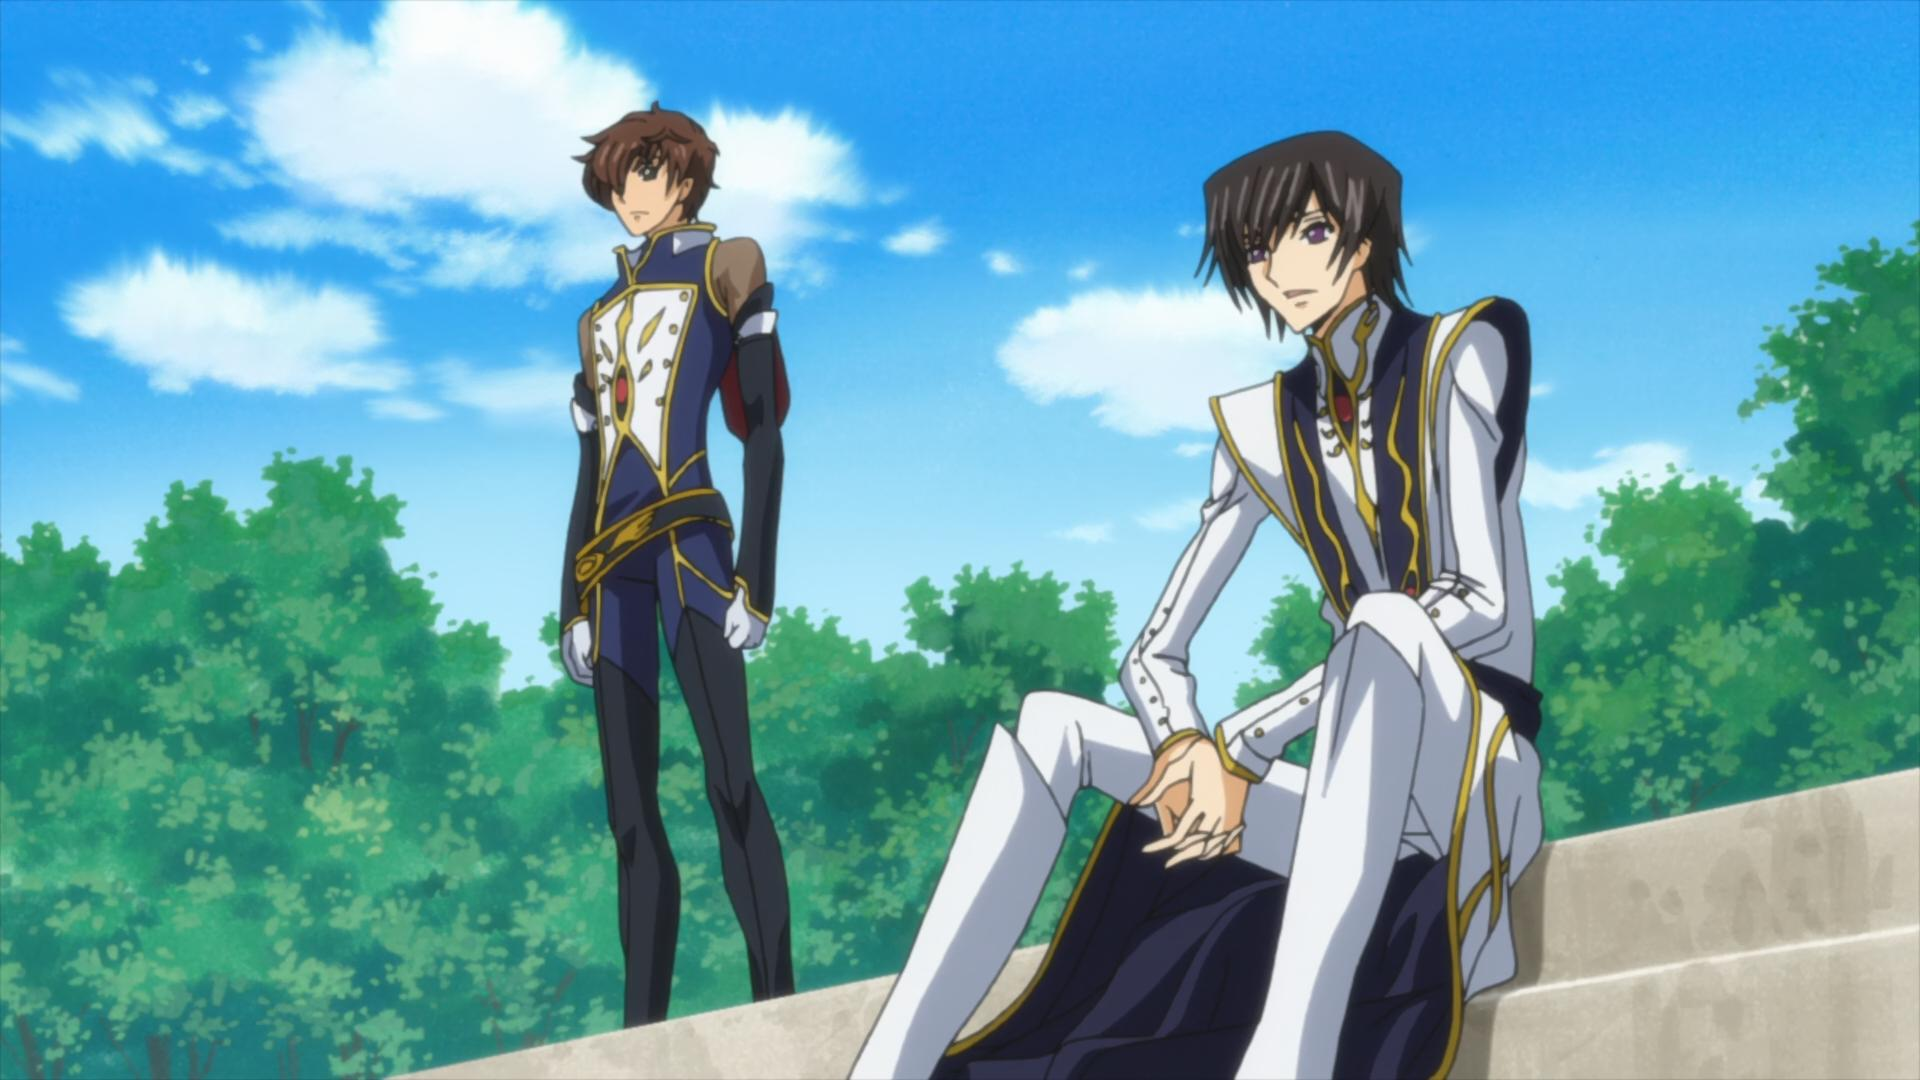 Will There Be a Season 3 of Code Geass